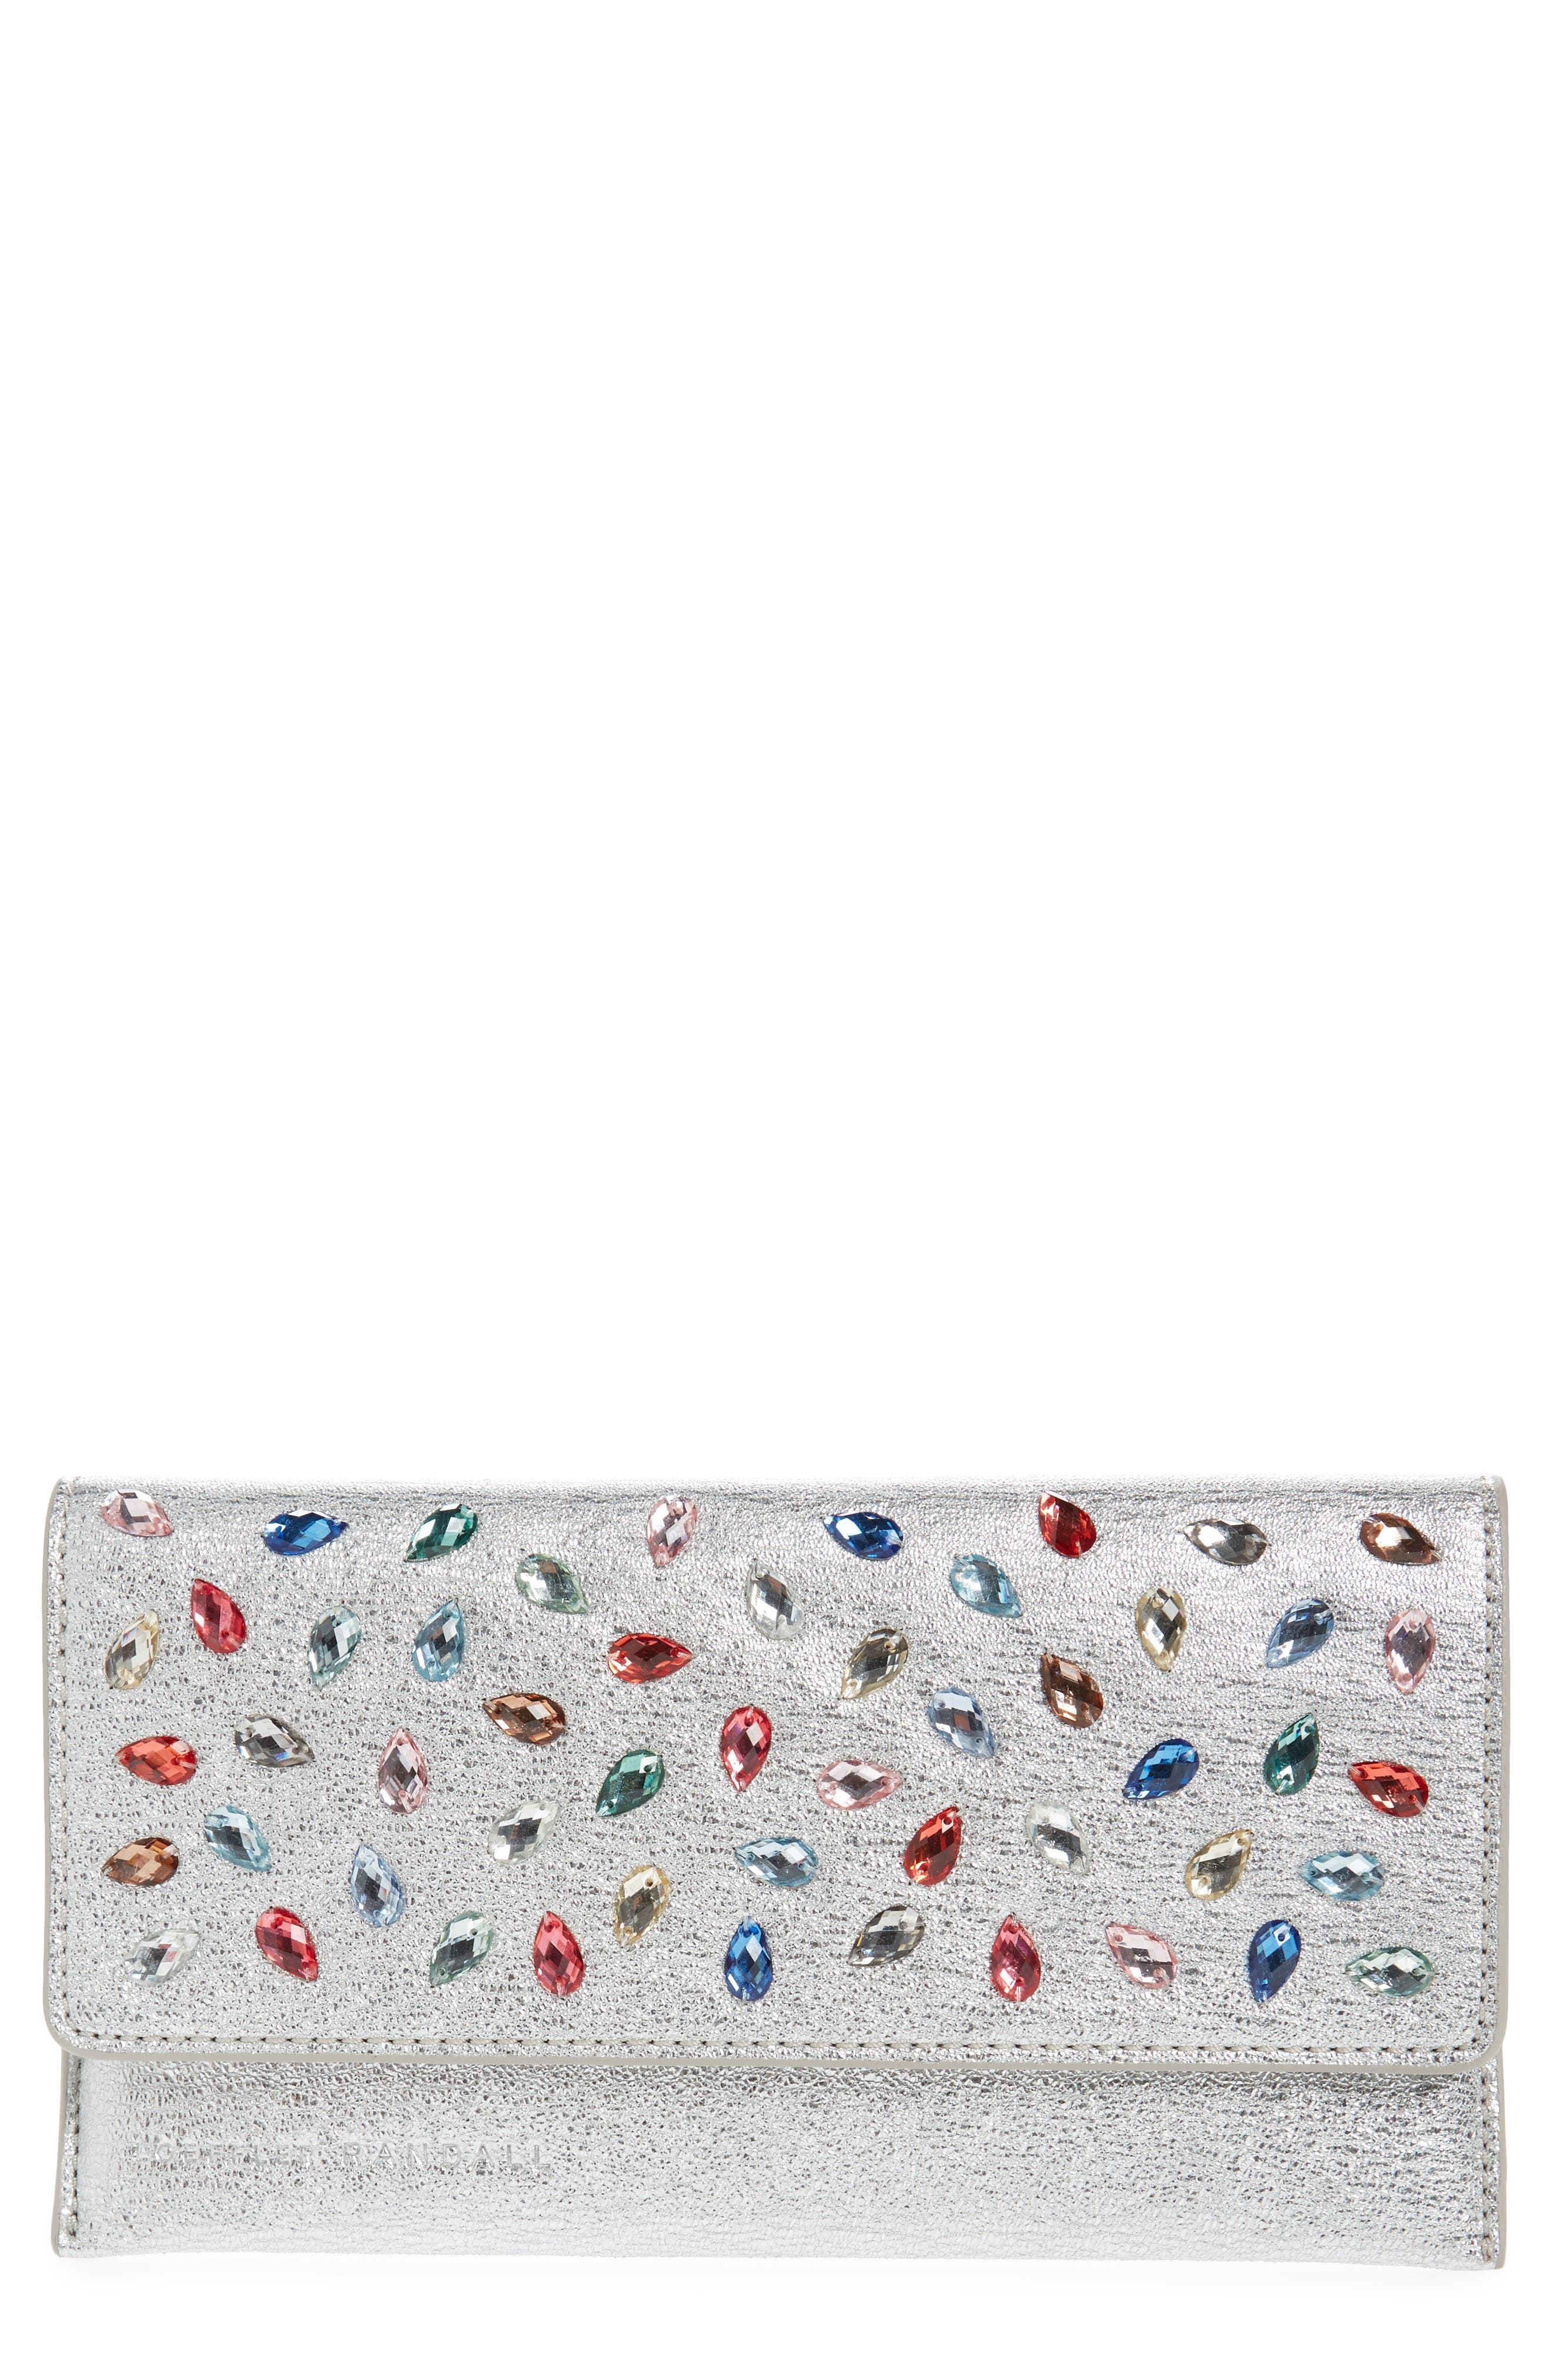 Everything Crystal Embellished Leather Wallet,                         Main,                         color, Silver/ Multi